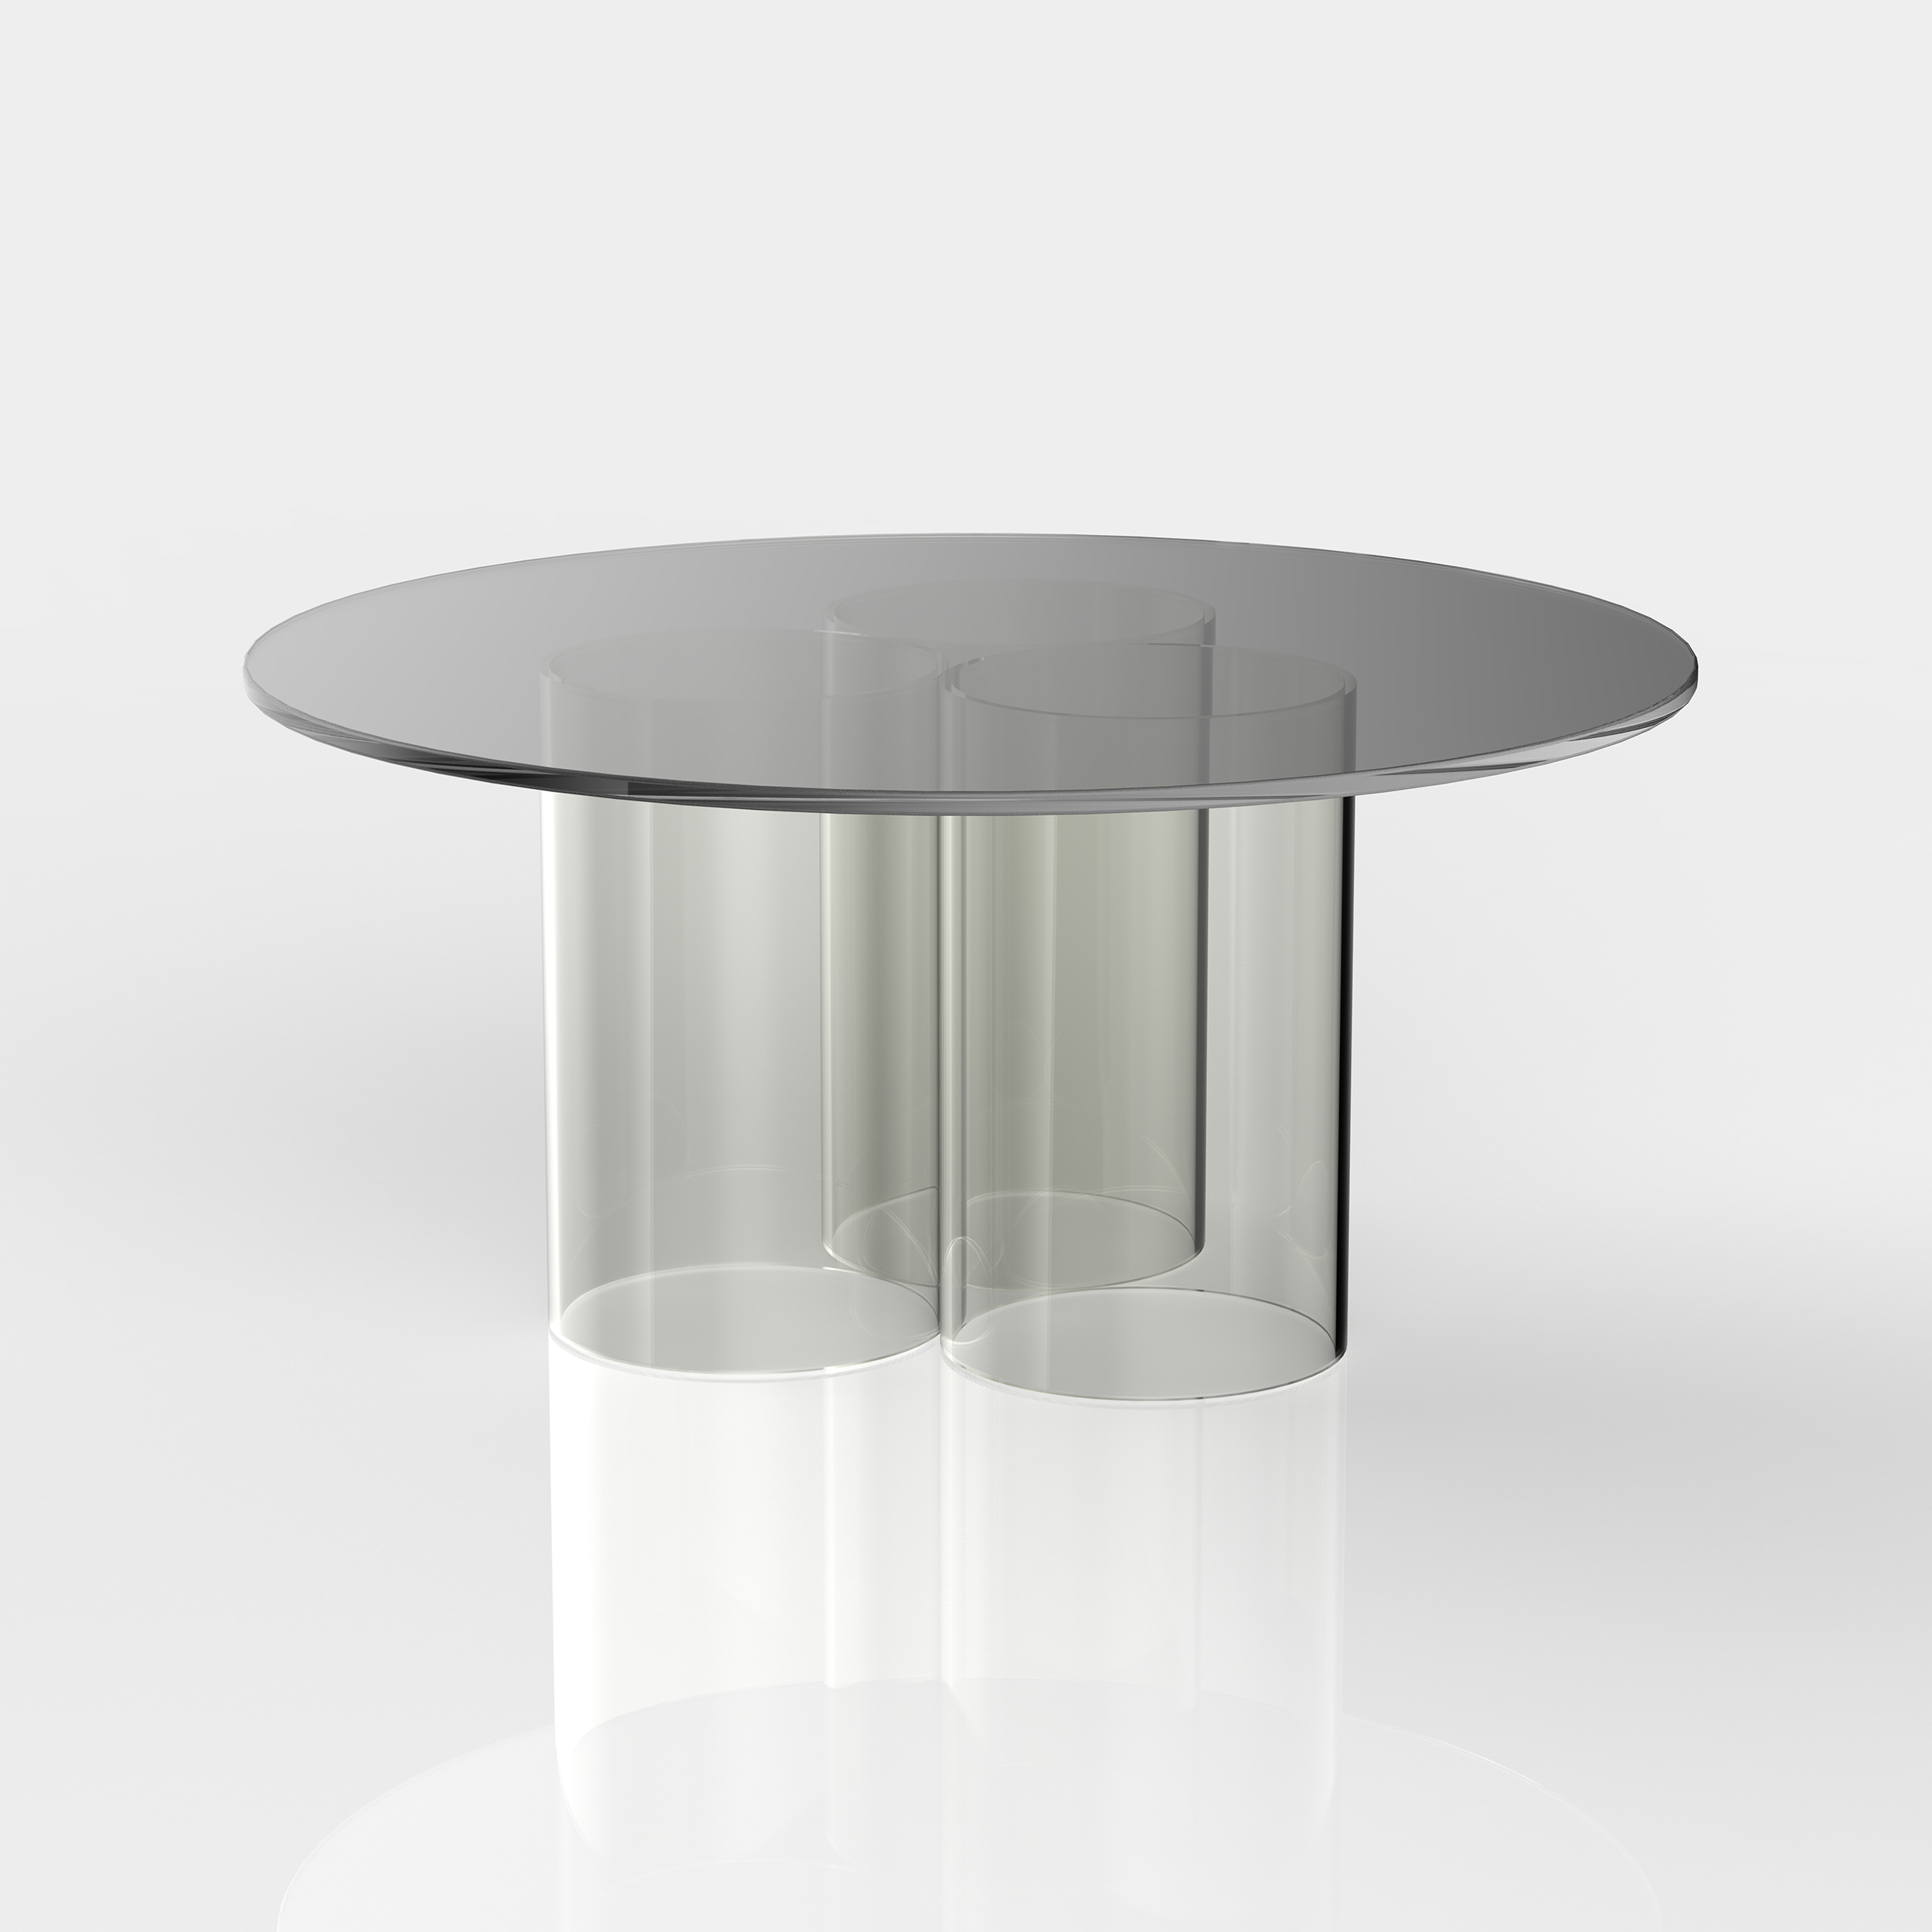 Nunki Round Coffee Table Iacoli Mcallister